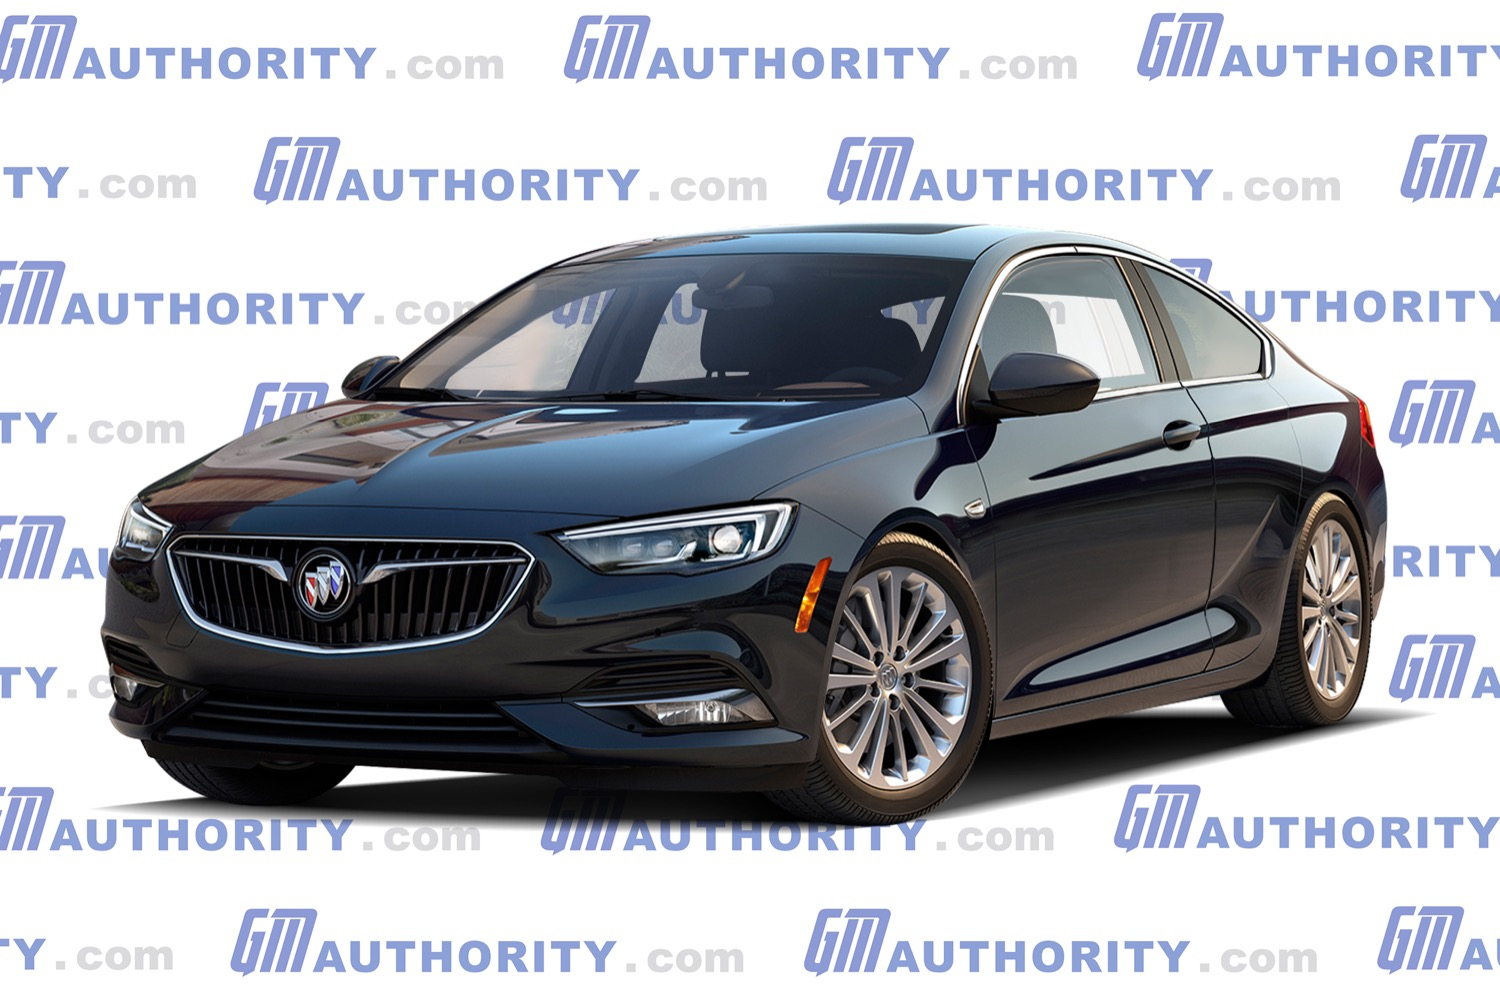 New Renderings Show Hypothetical Buick Regal Coupe | Gm When Will The 2022 Buick Regal Be Available